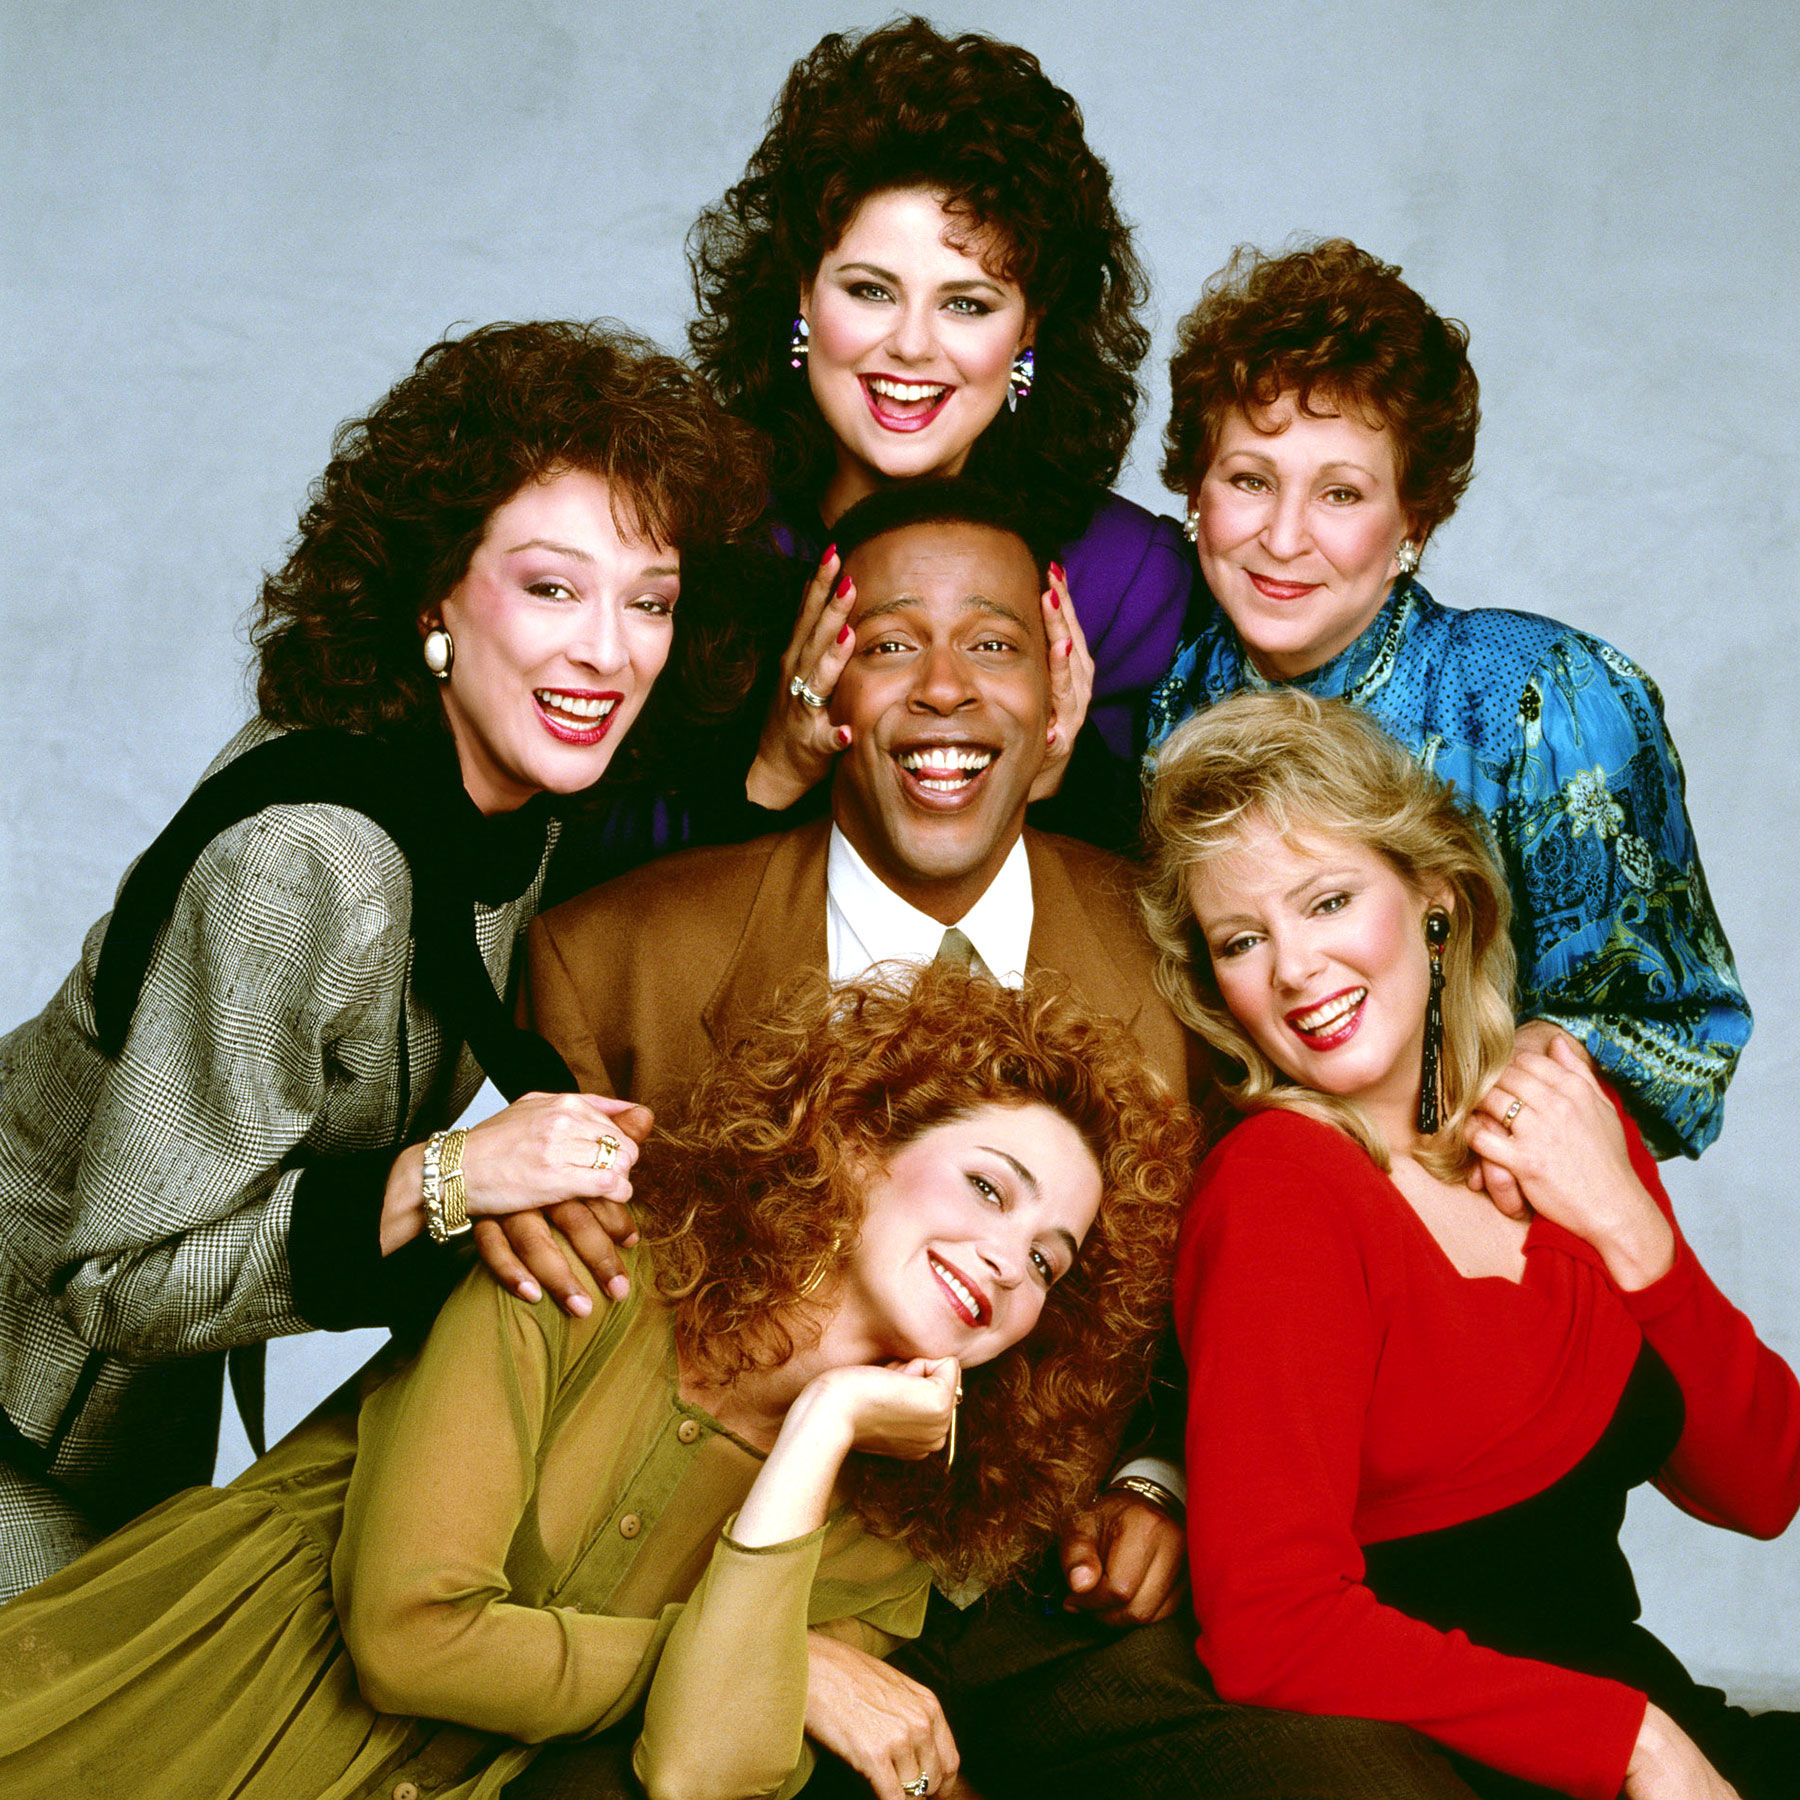 WATCH: 11 Designing Women Episodes You Must Watch at Least Once